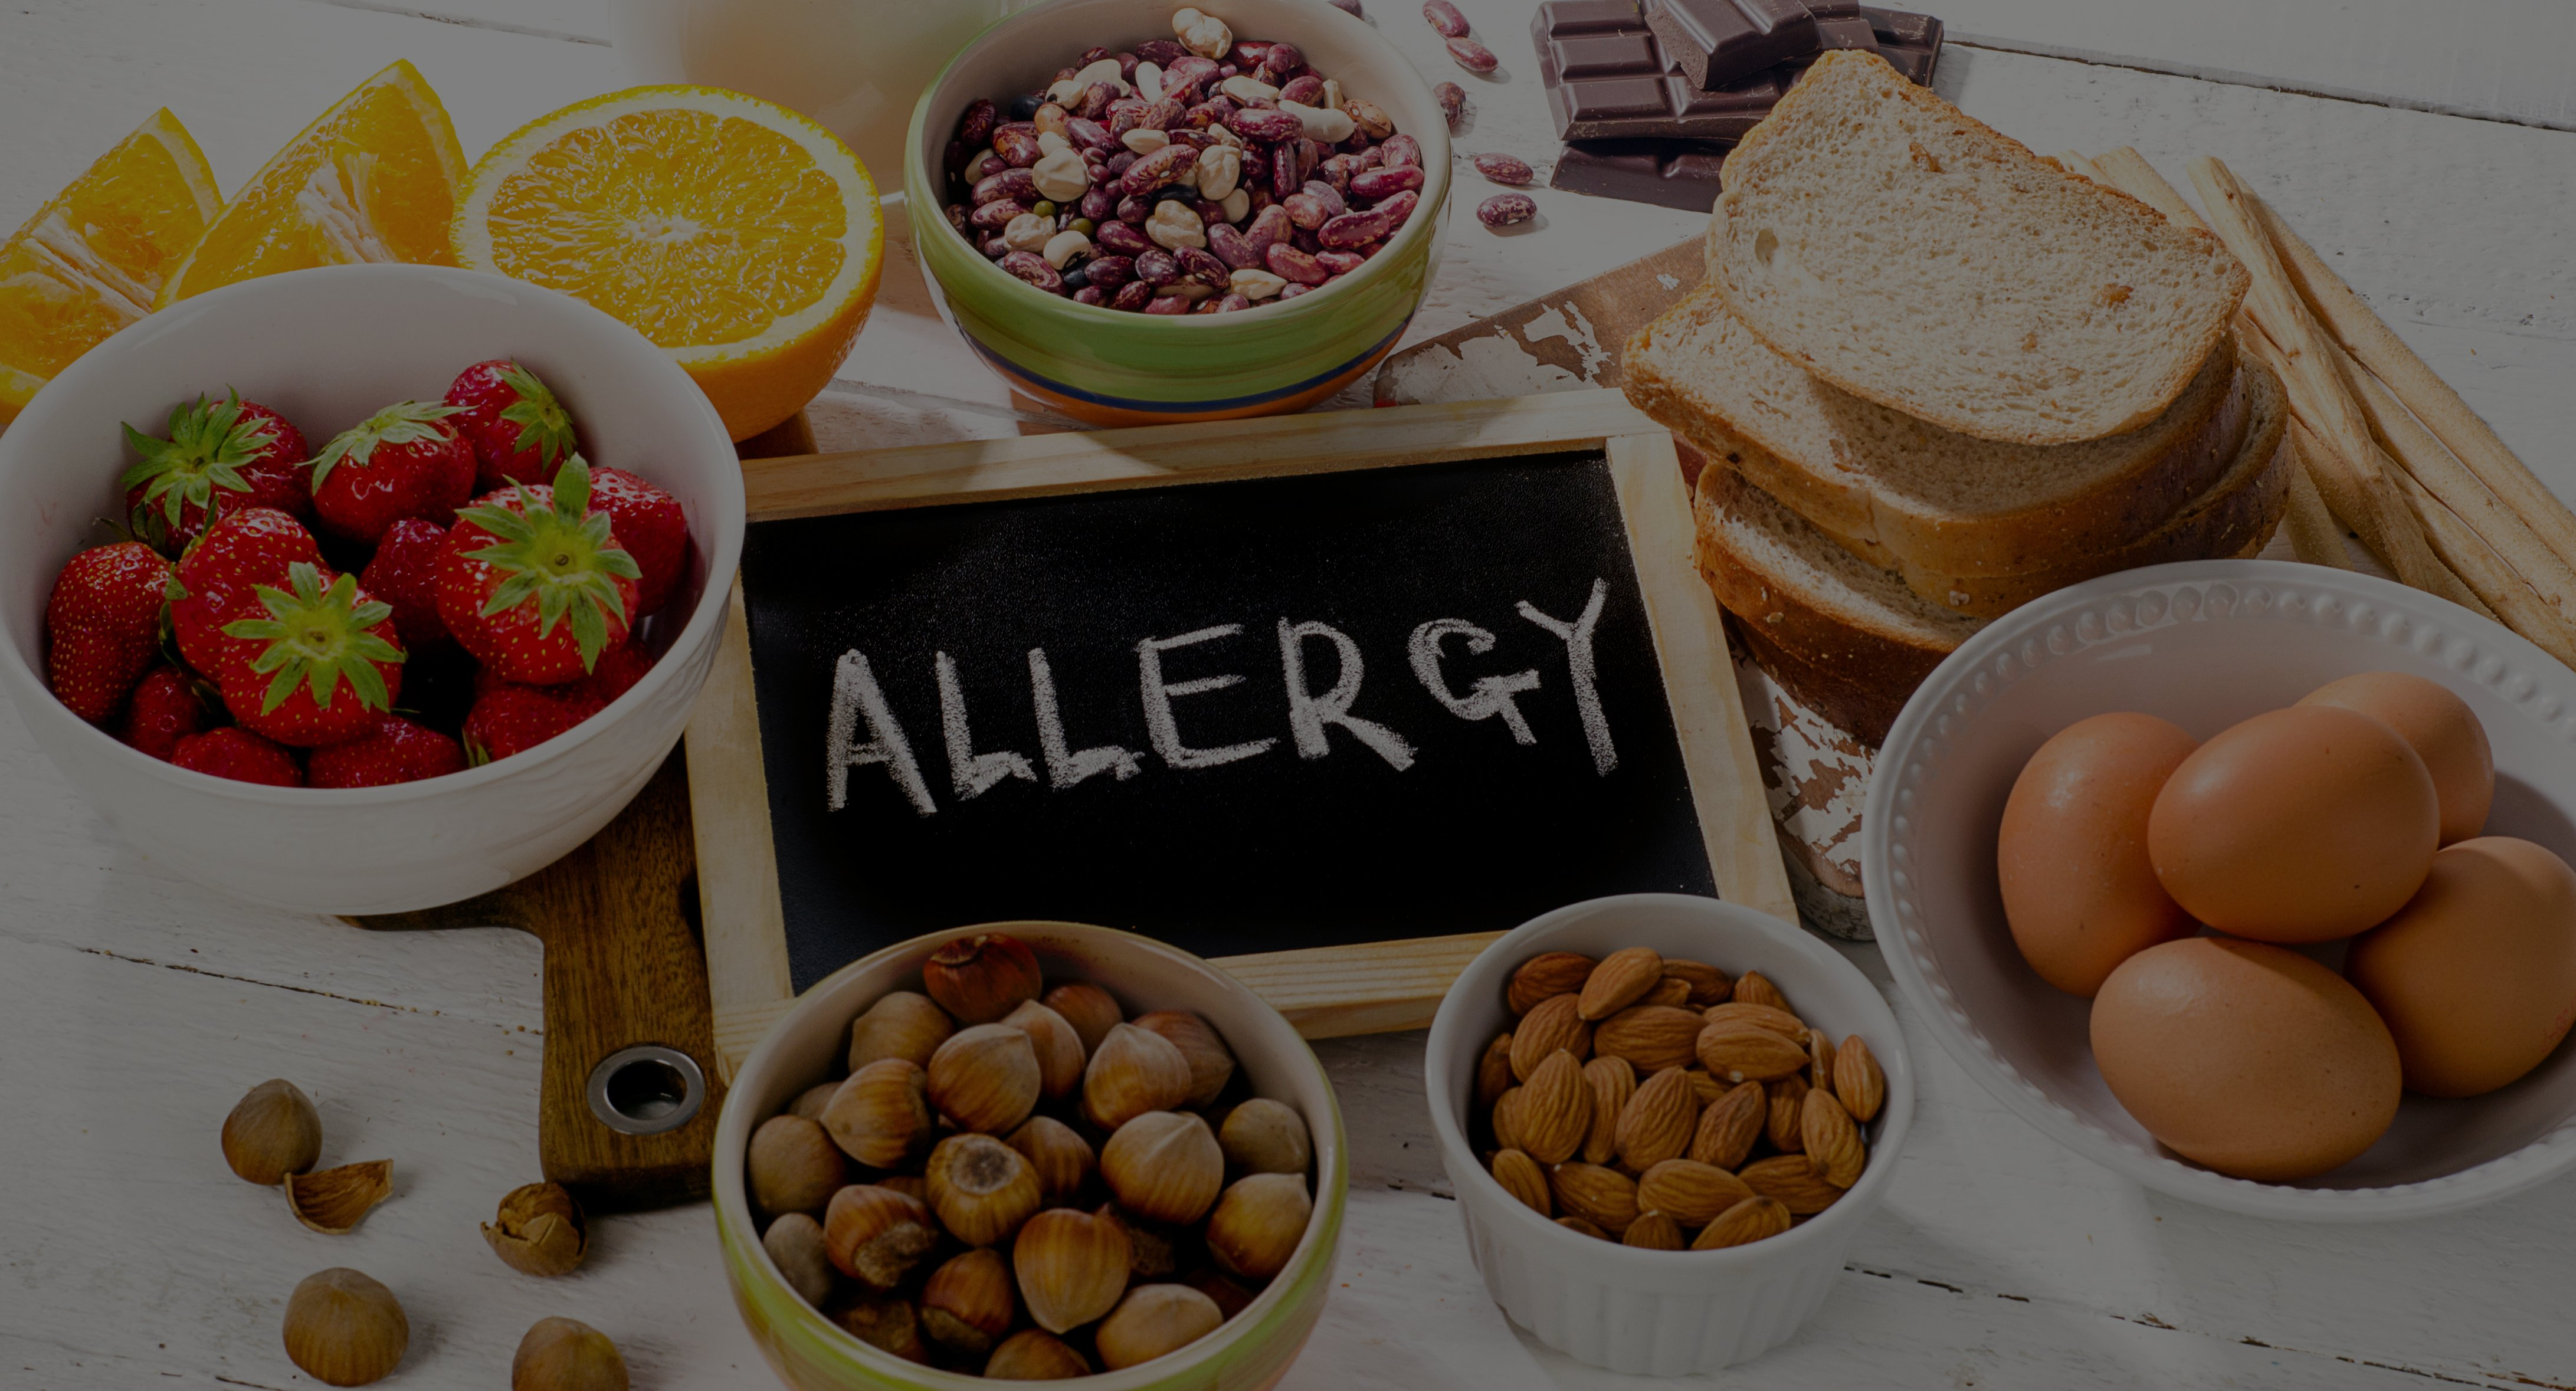 Getting Smart With Allergens - A Simple Guide For All Food Businesses